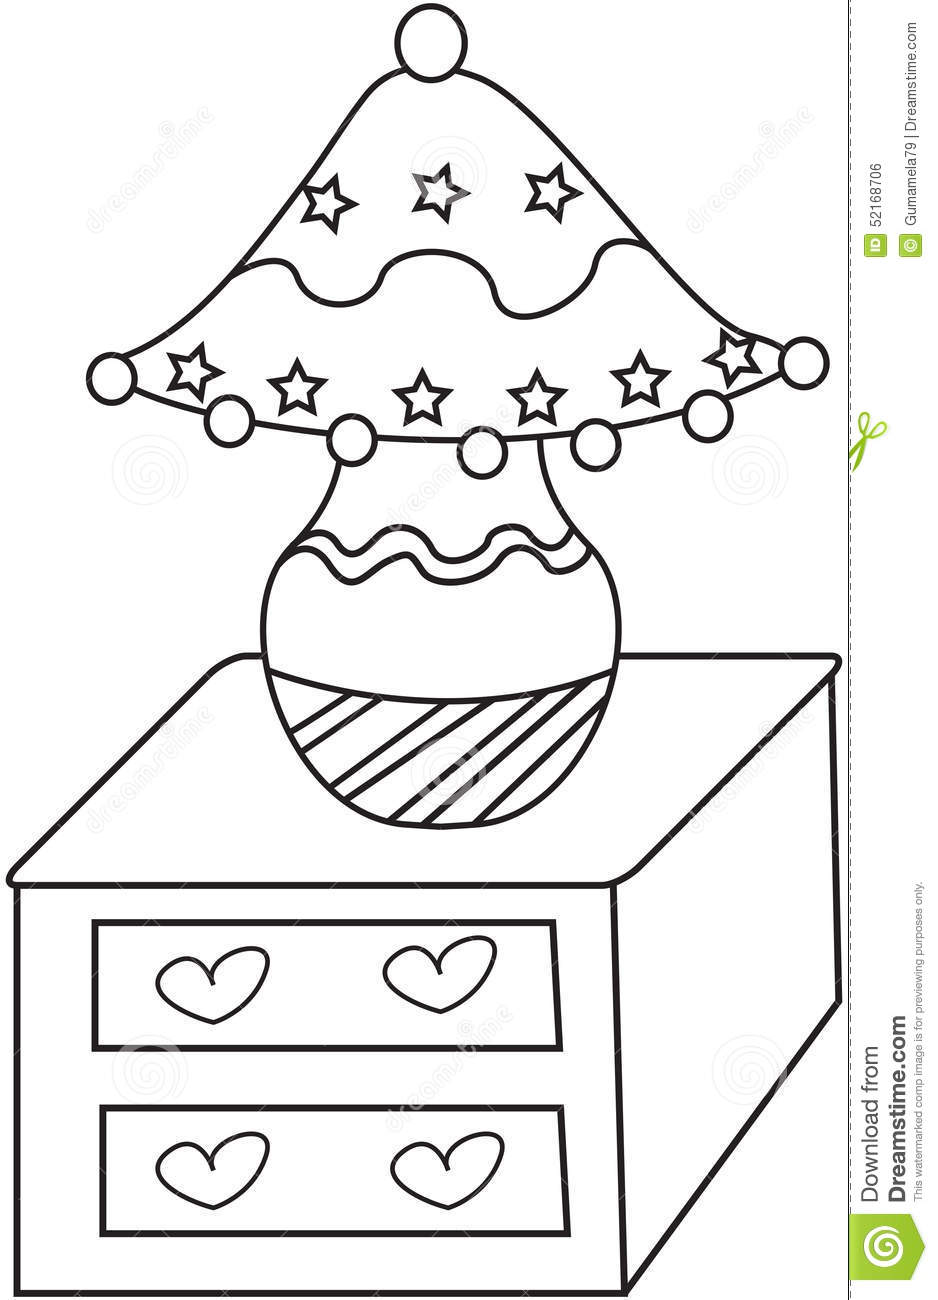 coloring pages roseart lampshades - photo#1